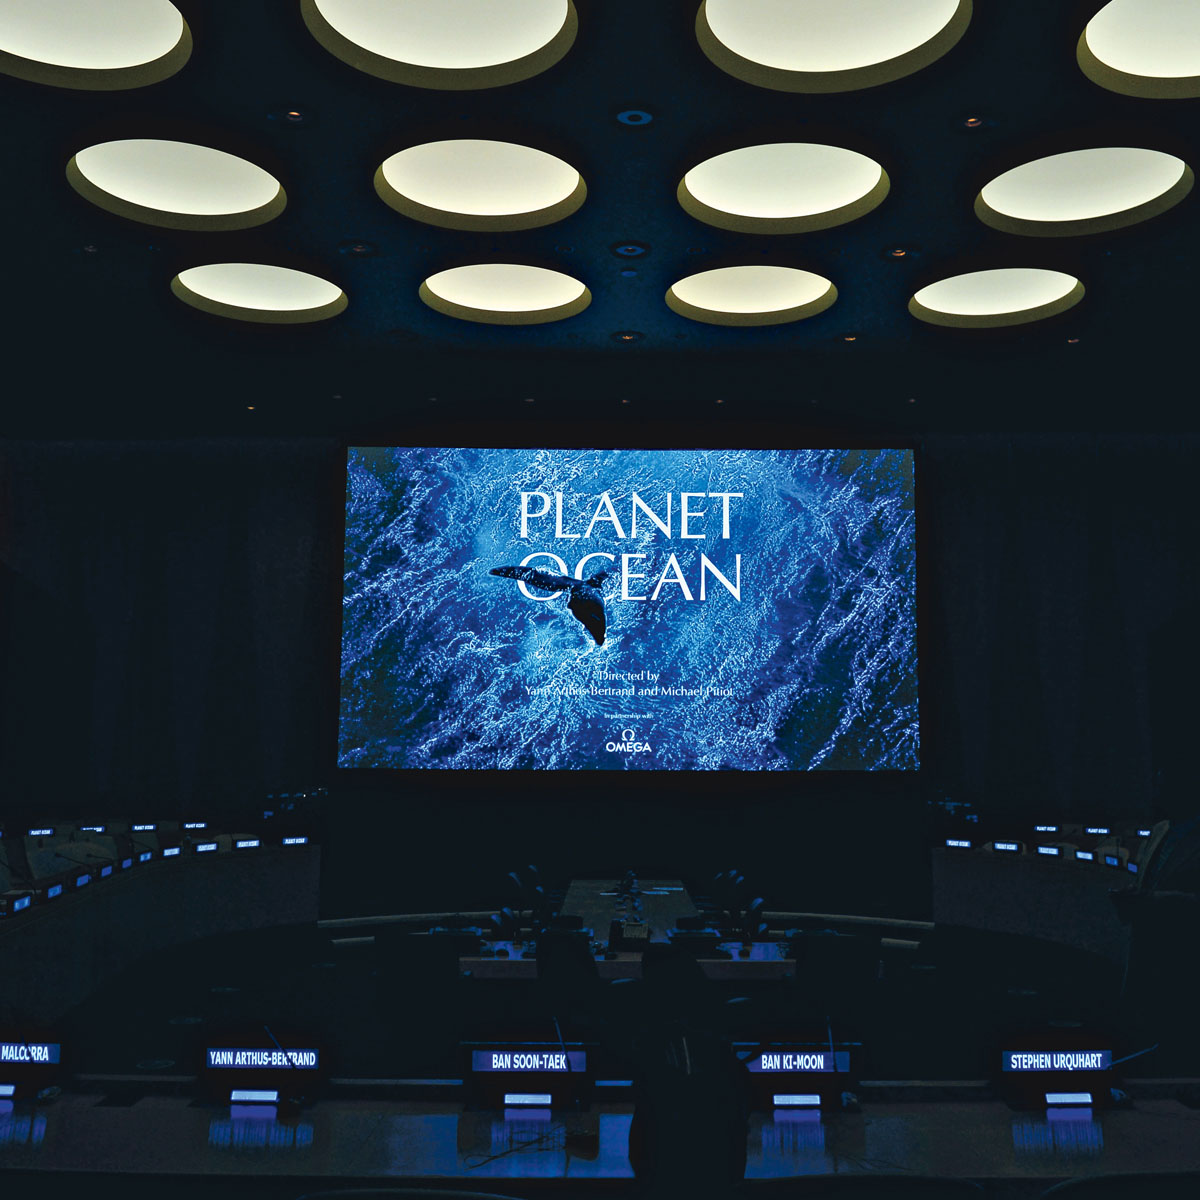 Planet Ocean at the United Nations, New York